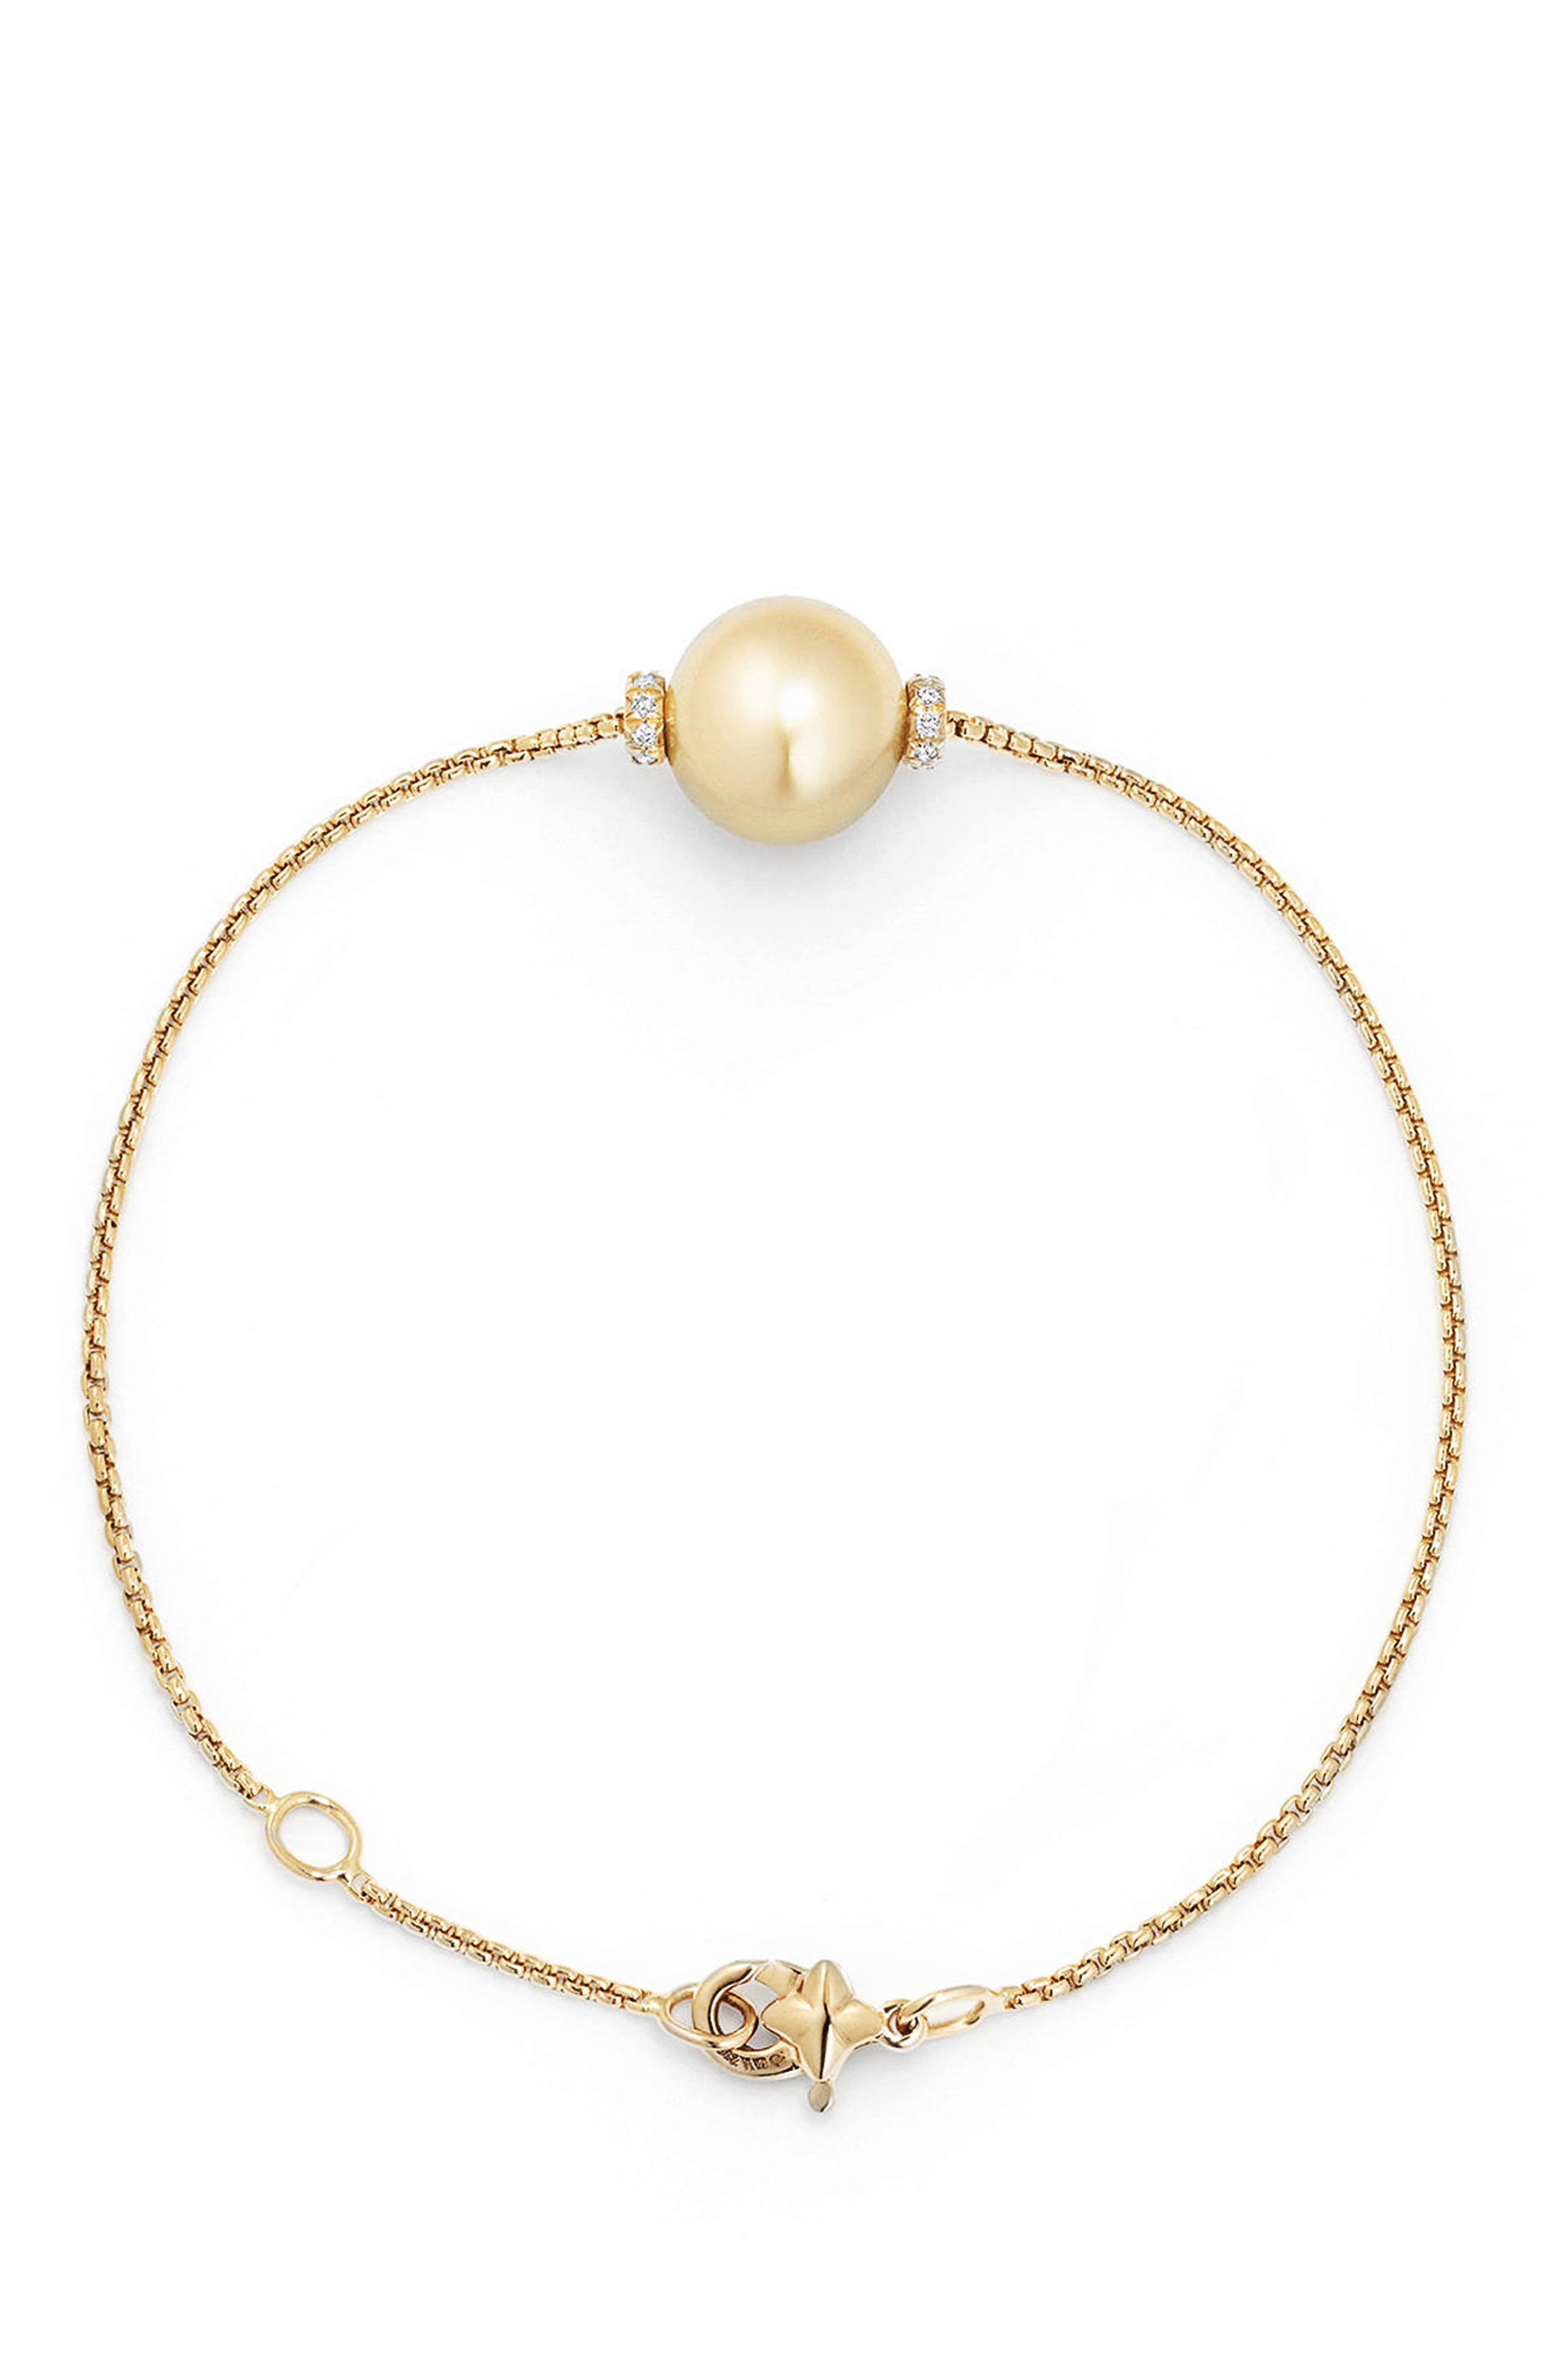 Solari Single Station Bracelet in 18k Gold with Diamonds & Pearl,                             Alternate thumbnail 3, color,                             YELLOW GOLD/ SOUTH SEA YELLOW